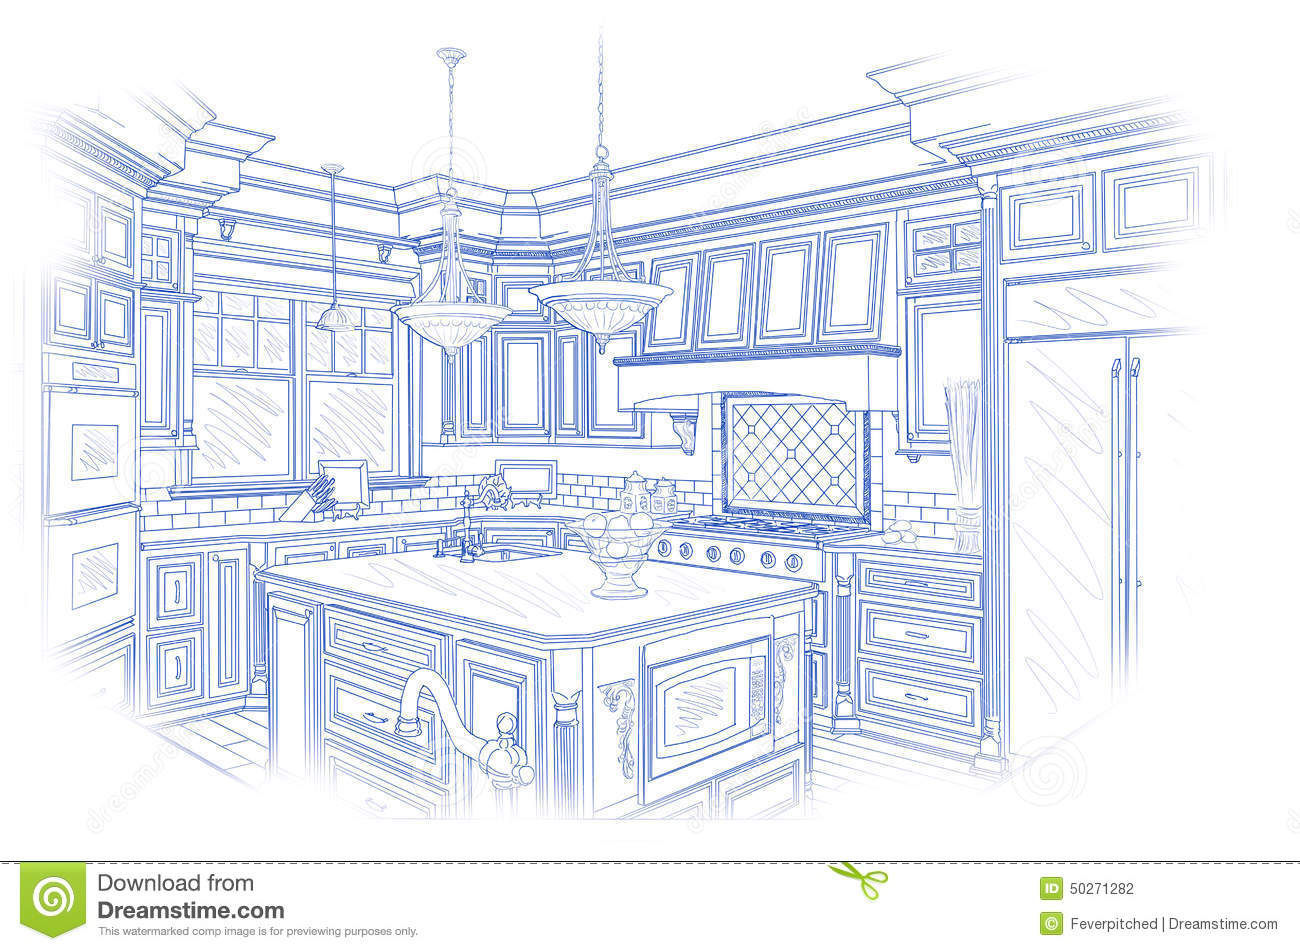 Blueprint custom kitchen design drawing on white stock for Custom blueprints